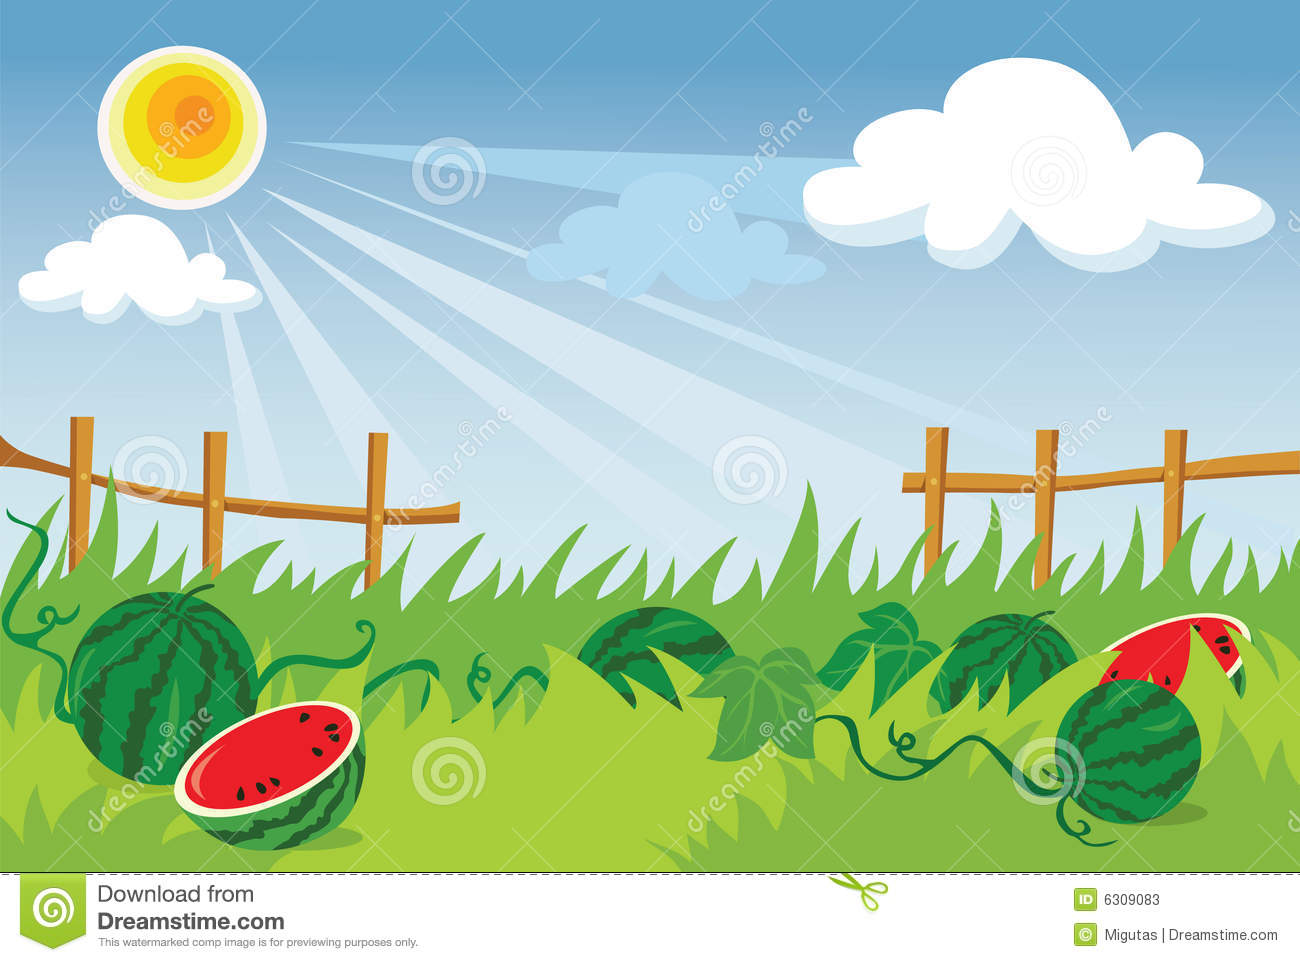 Watermelon plantation stock vector. Image of cloud, herb ...